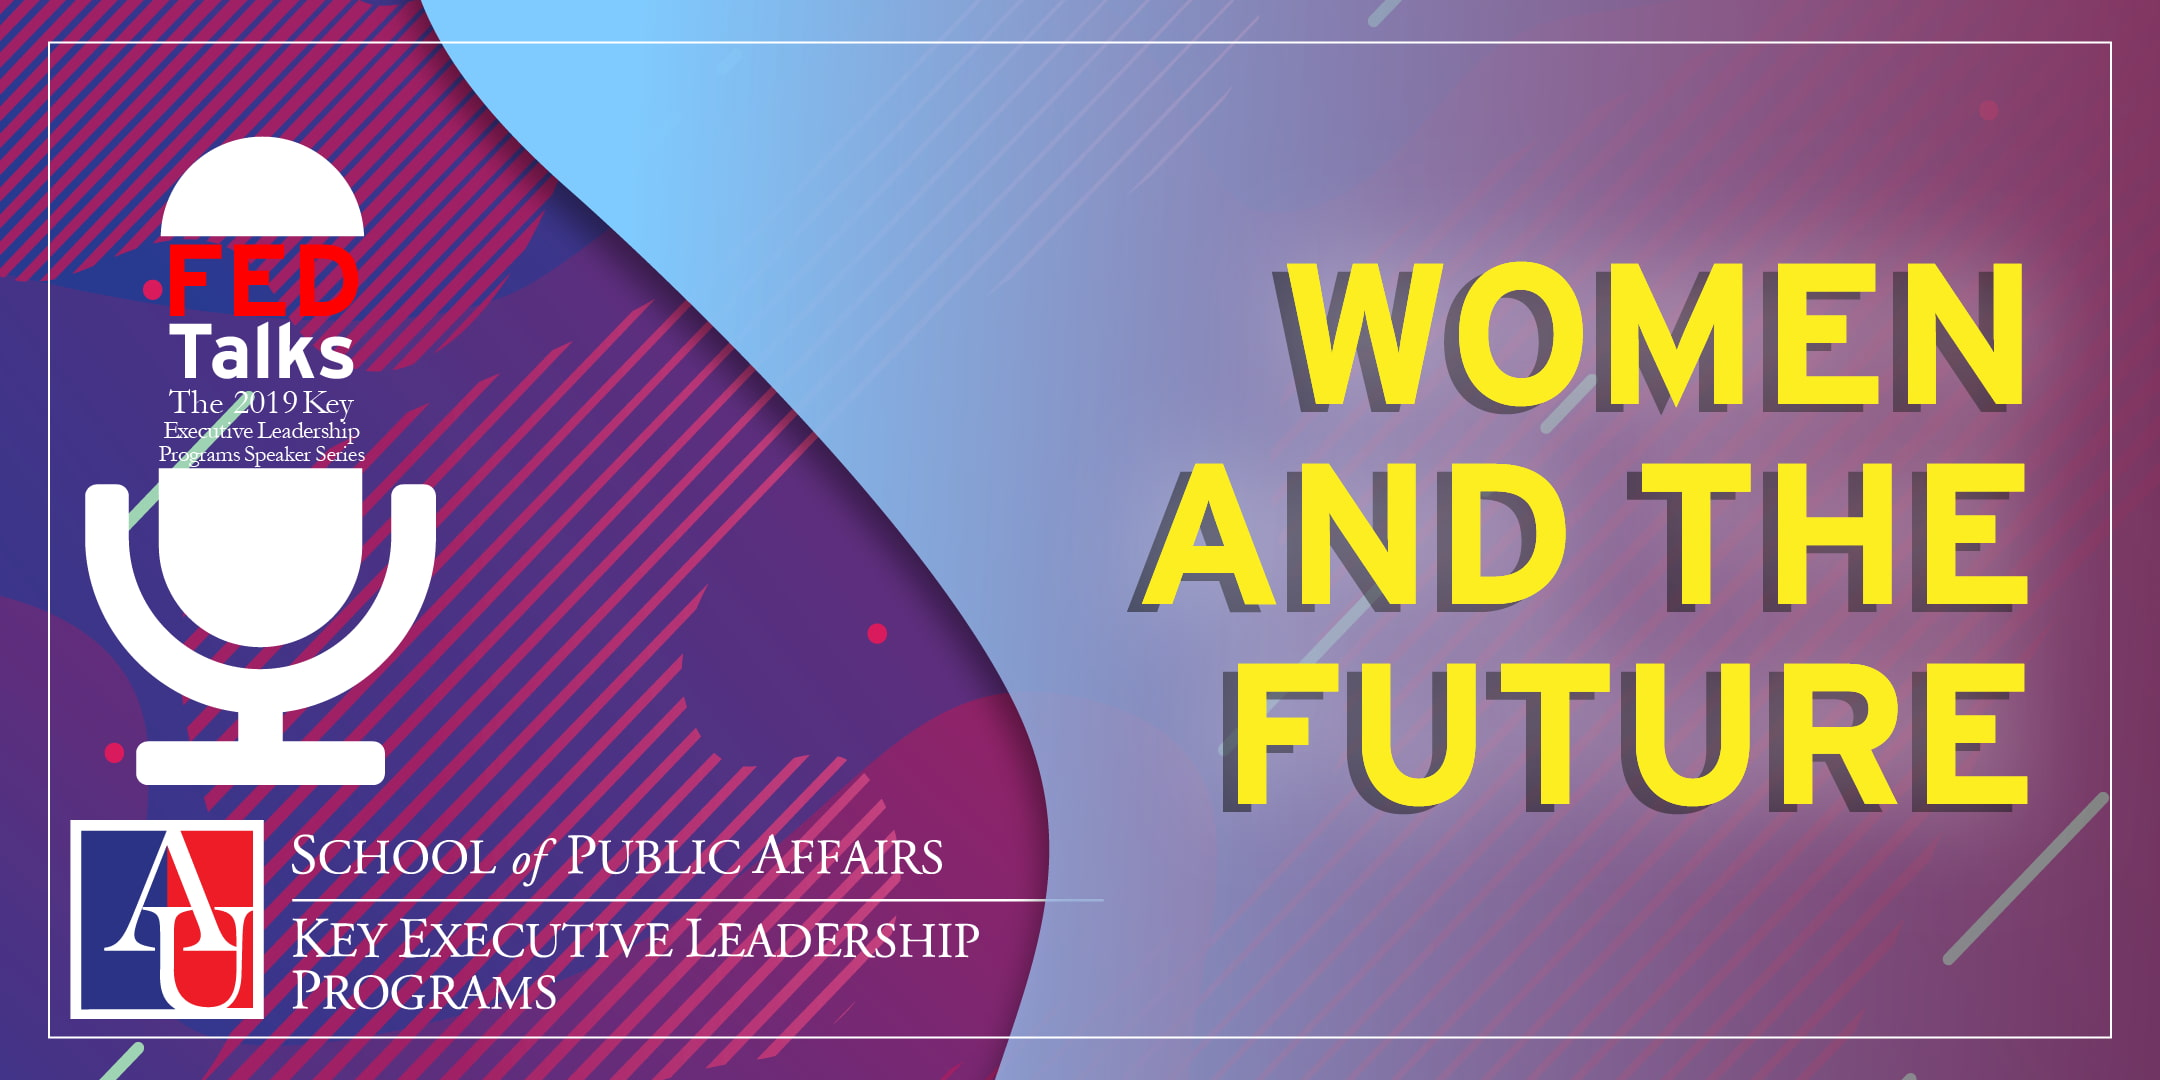 Women and the Future FEDTalks from April 2019